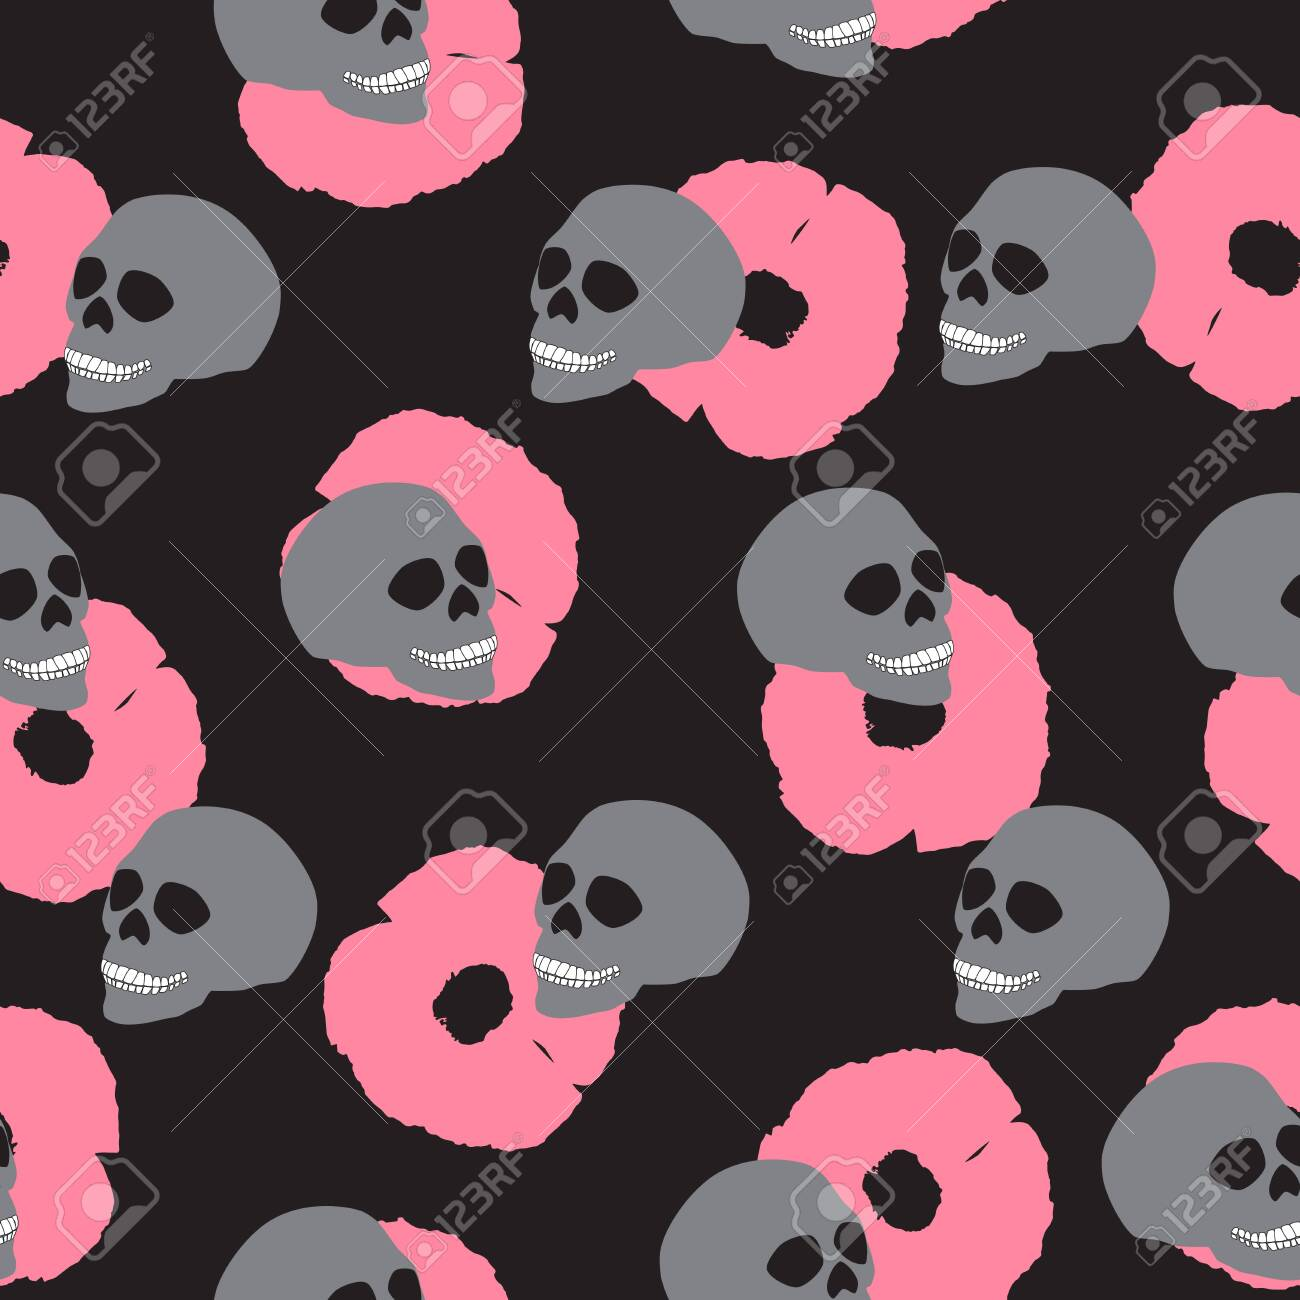 Seamless Pattern Gray Human Skull Pink Flowers On Black